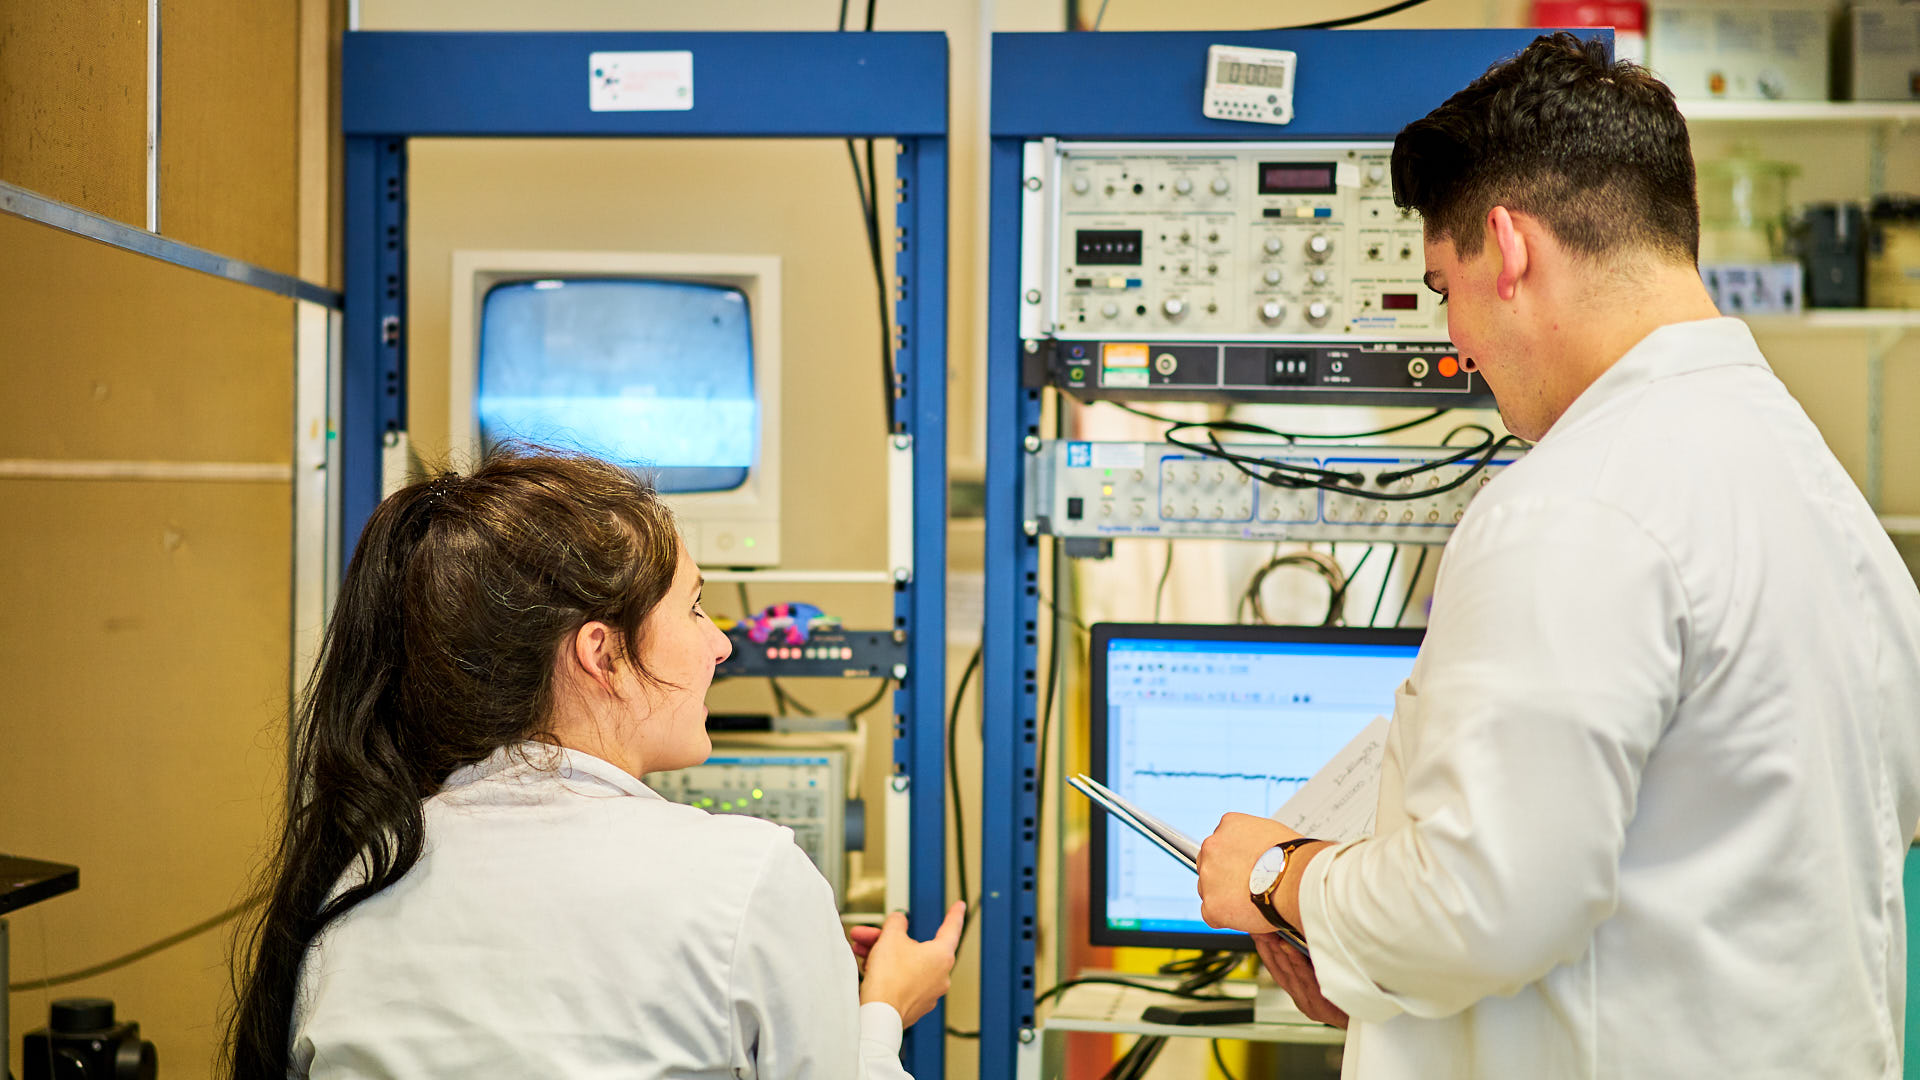 Two PhD students working on research in a lab